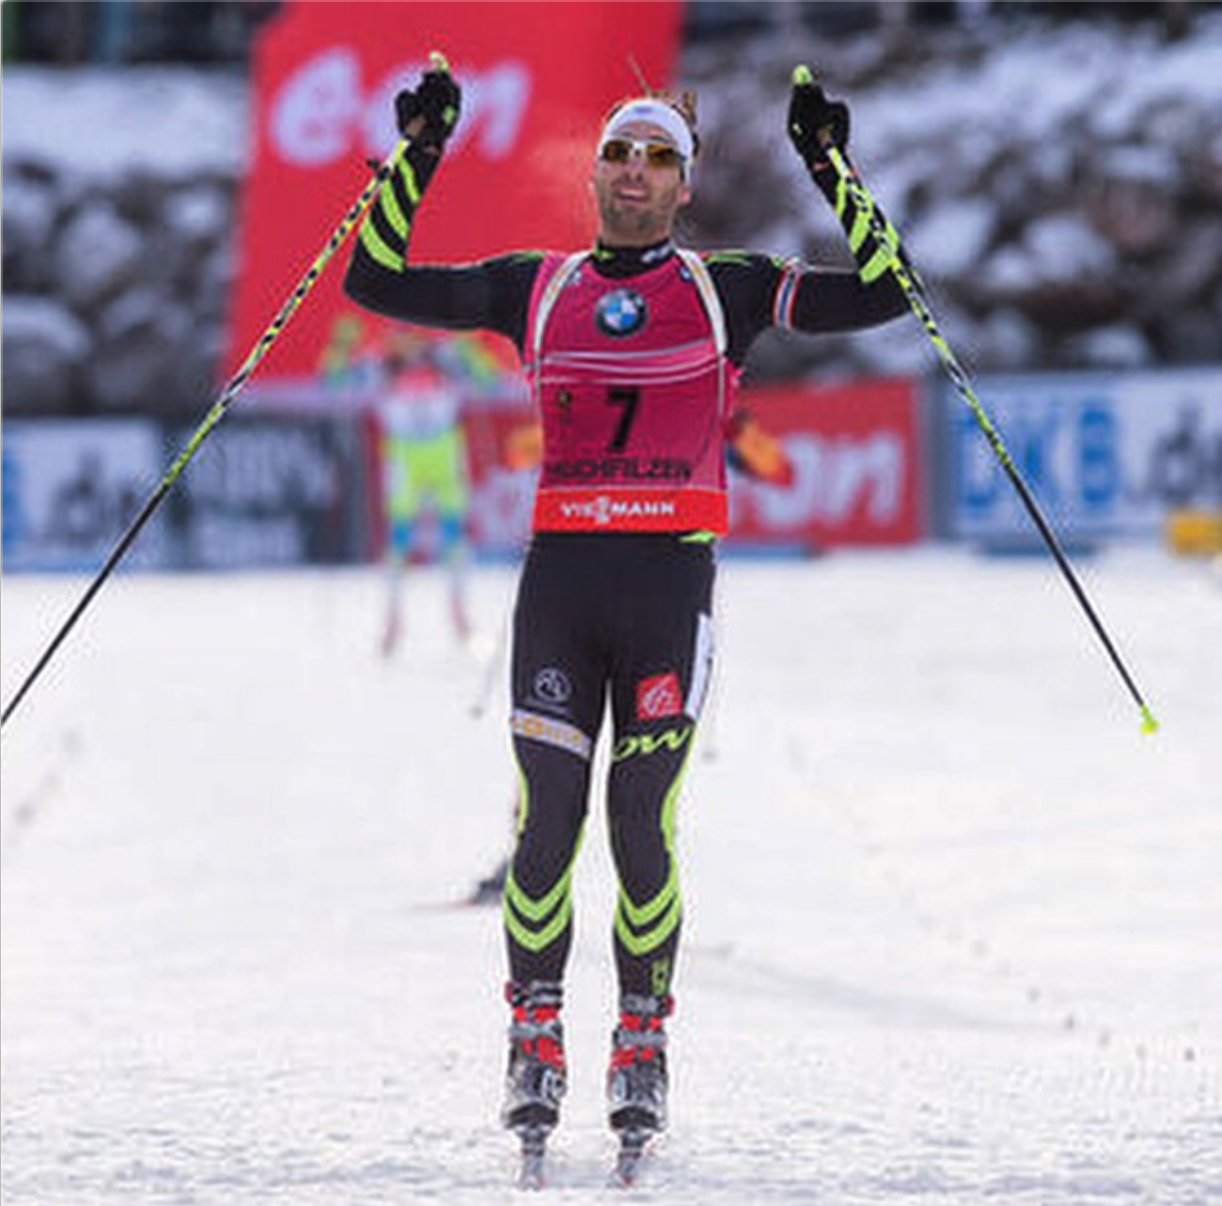 https://fasterskier.com/wp-content/blogs.dir/1/files/2014/12/martin-fourcade-instagram.png